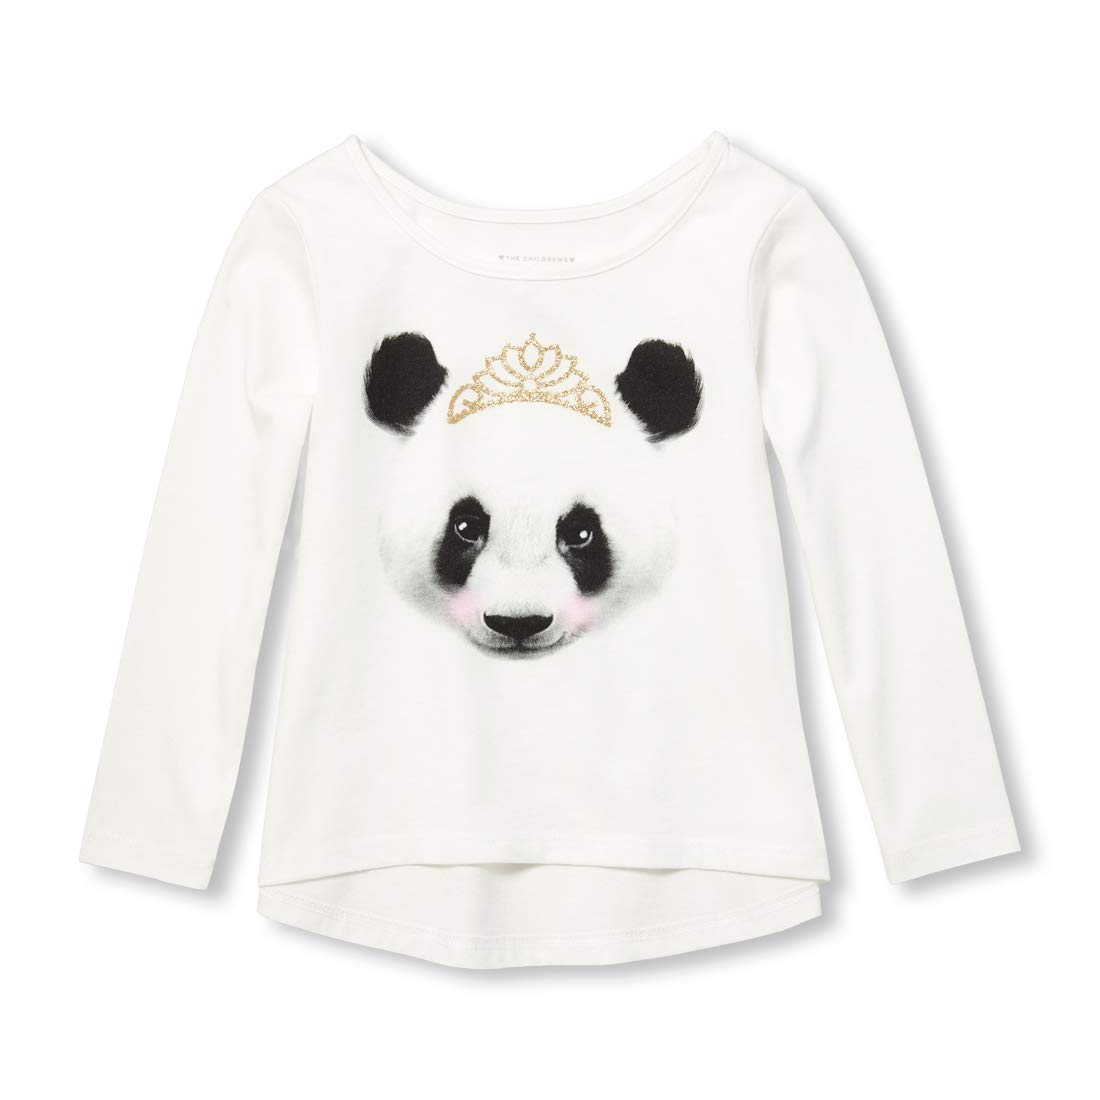 The Children's Place Baby Girls Long Sleeve Graphic Tee The Children's Place